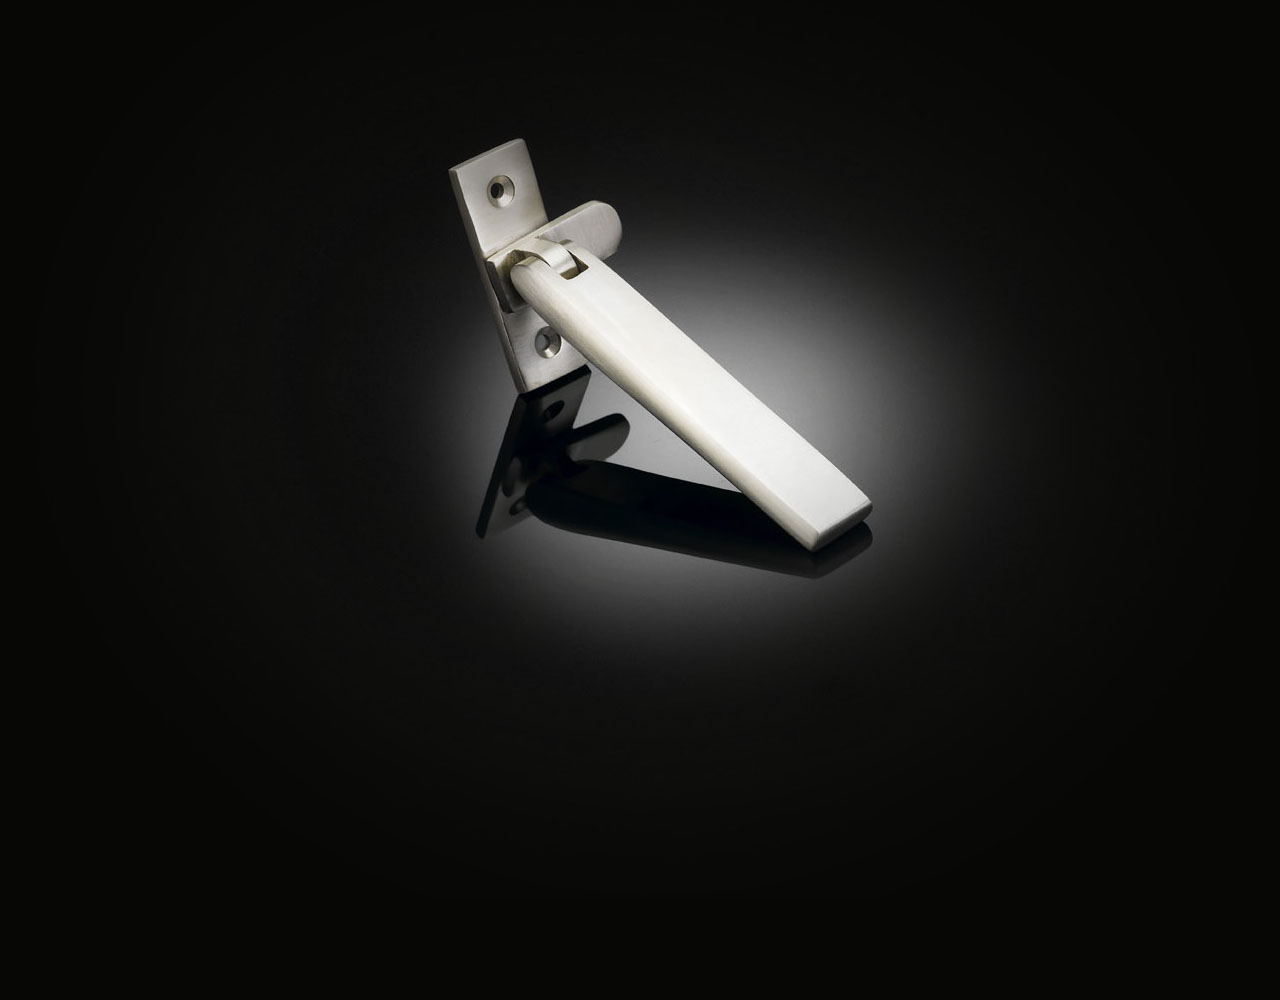 Bespoke window handle designed by Max Burchartz from izé in satin nickel finish MZW01